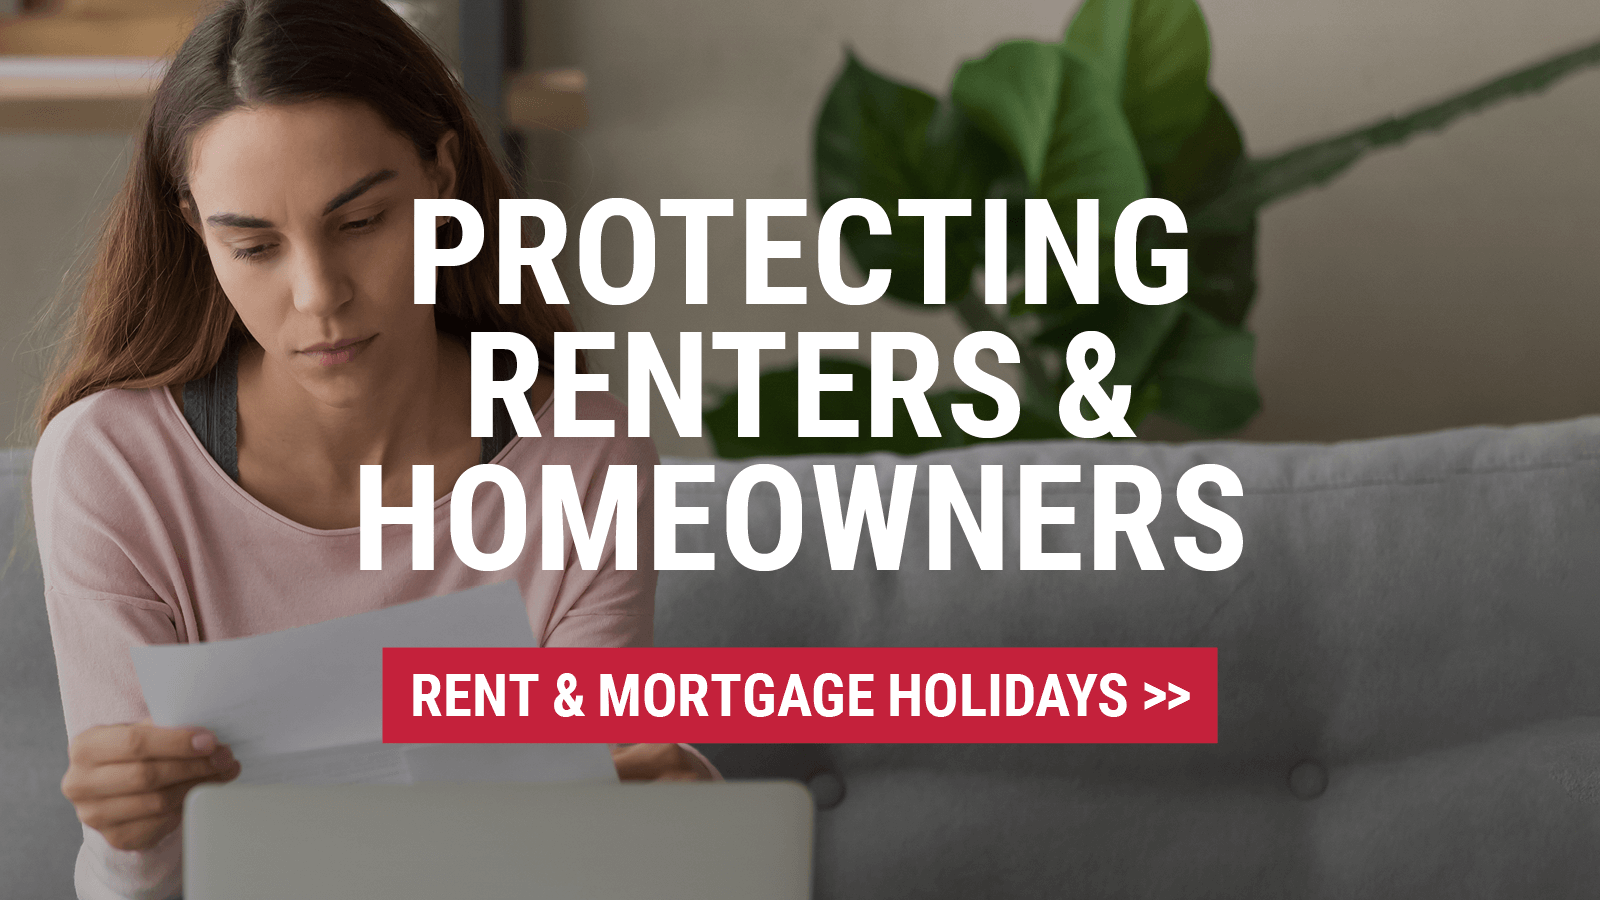 Protecting home owners and renters | Rent & Mortgage Holidays